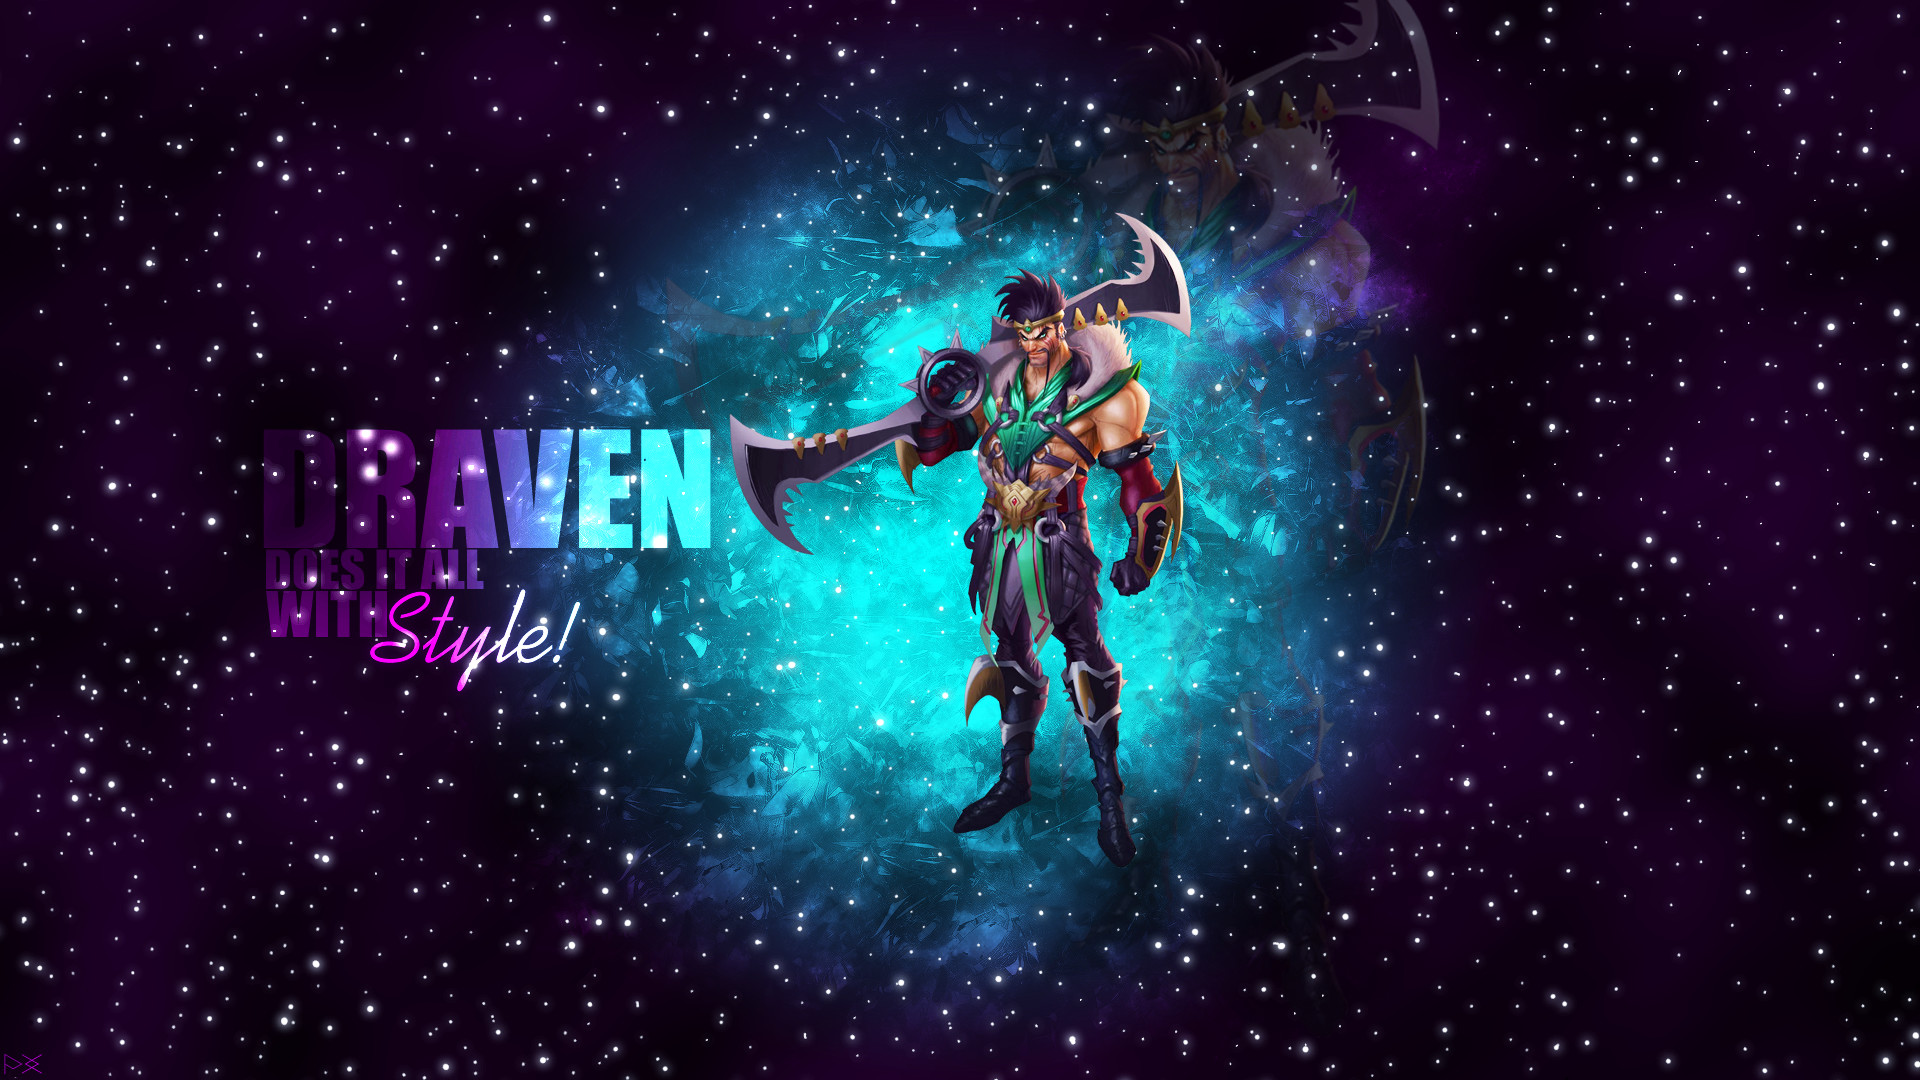 General Draven ADC Marksman League of Legends stars galaxy